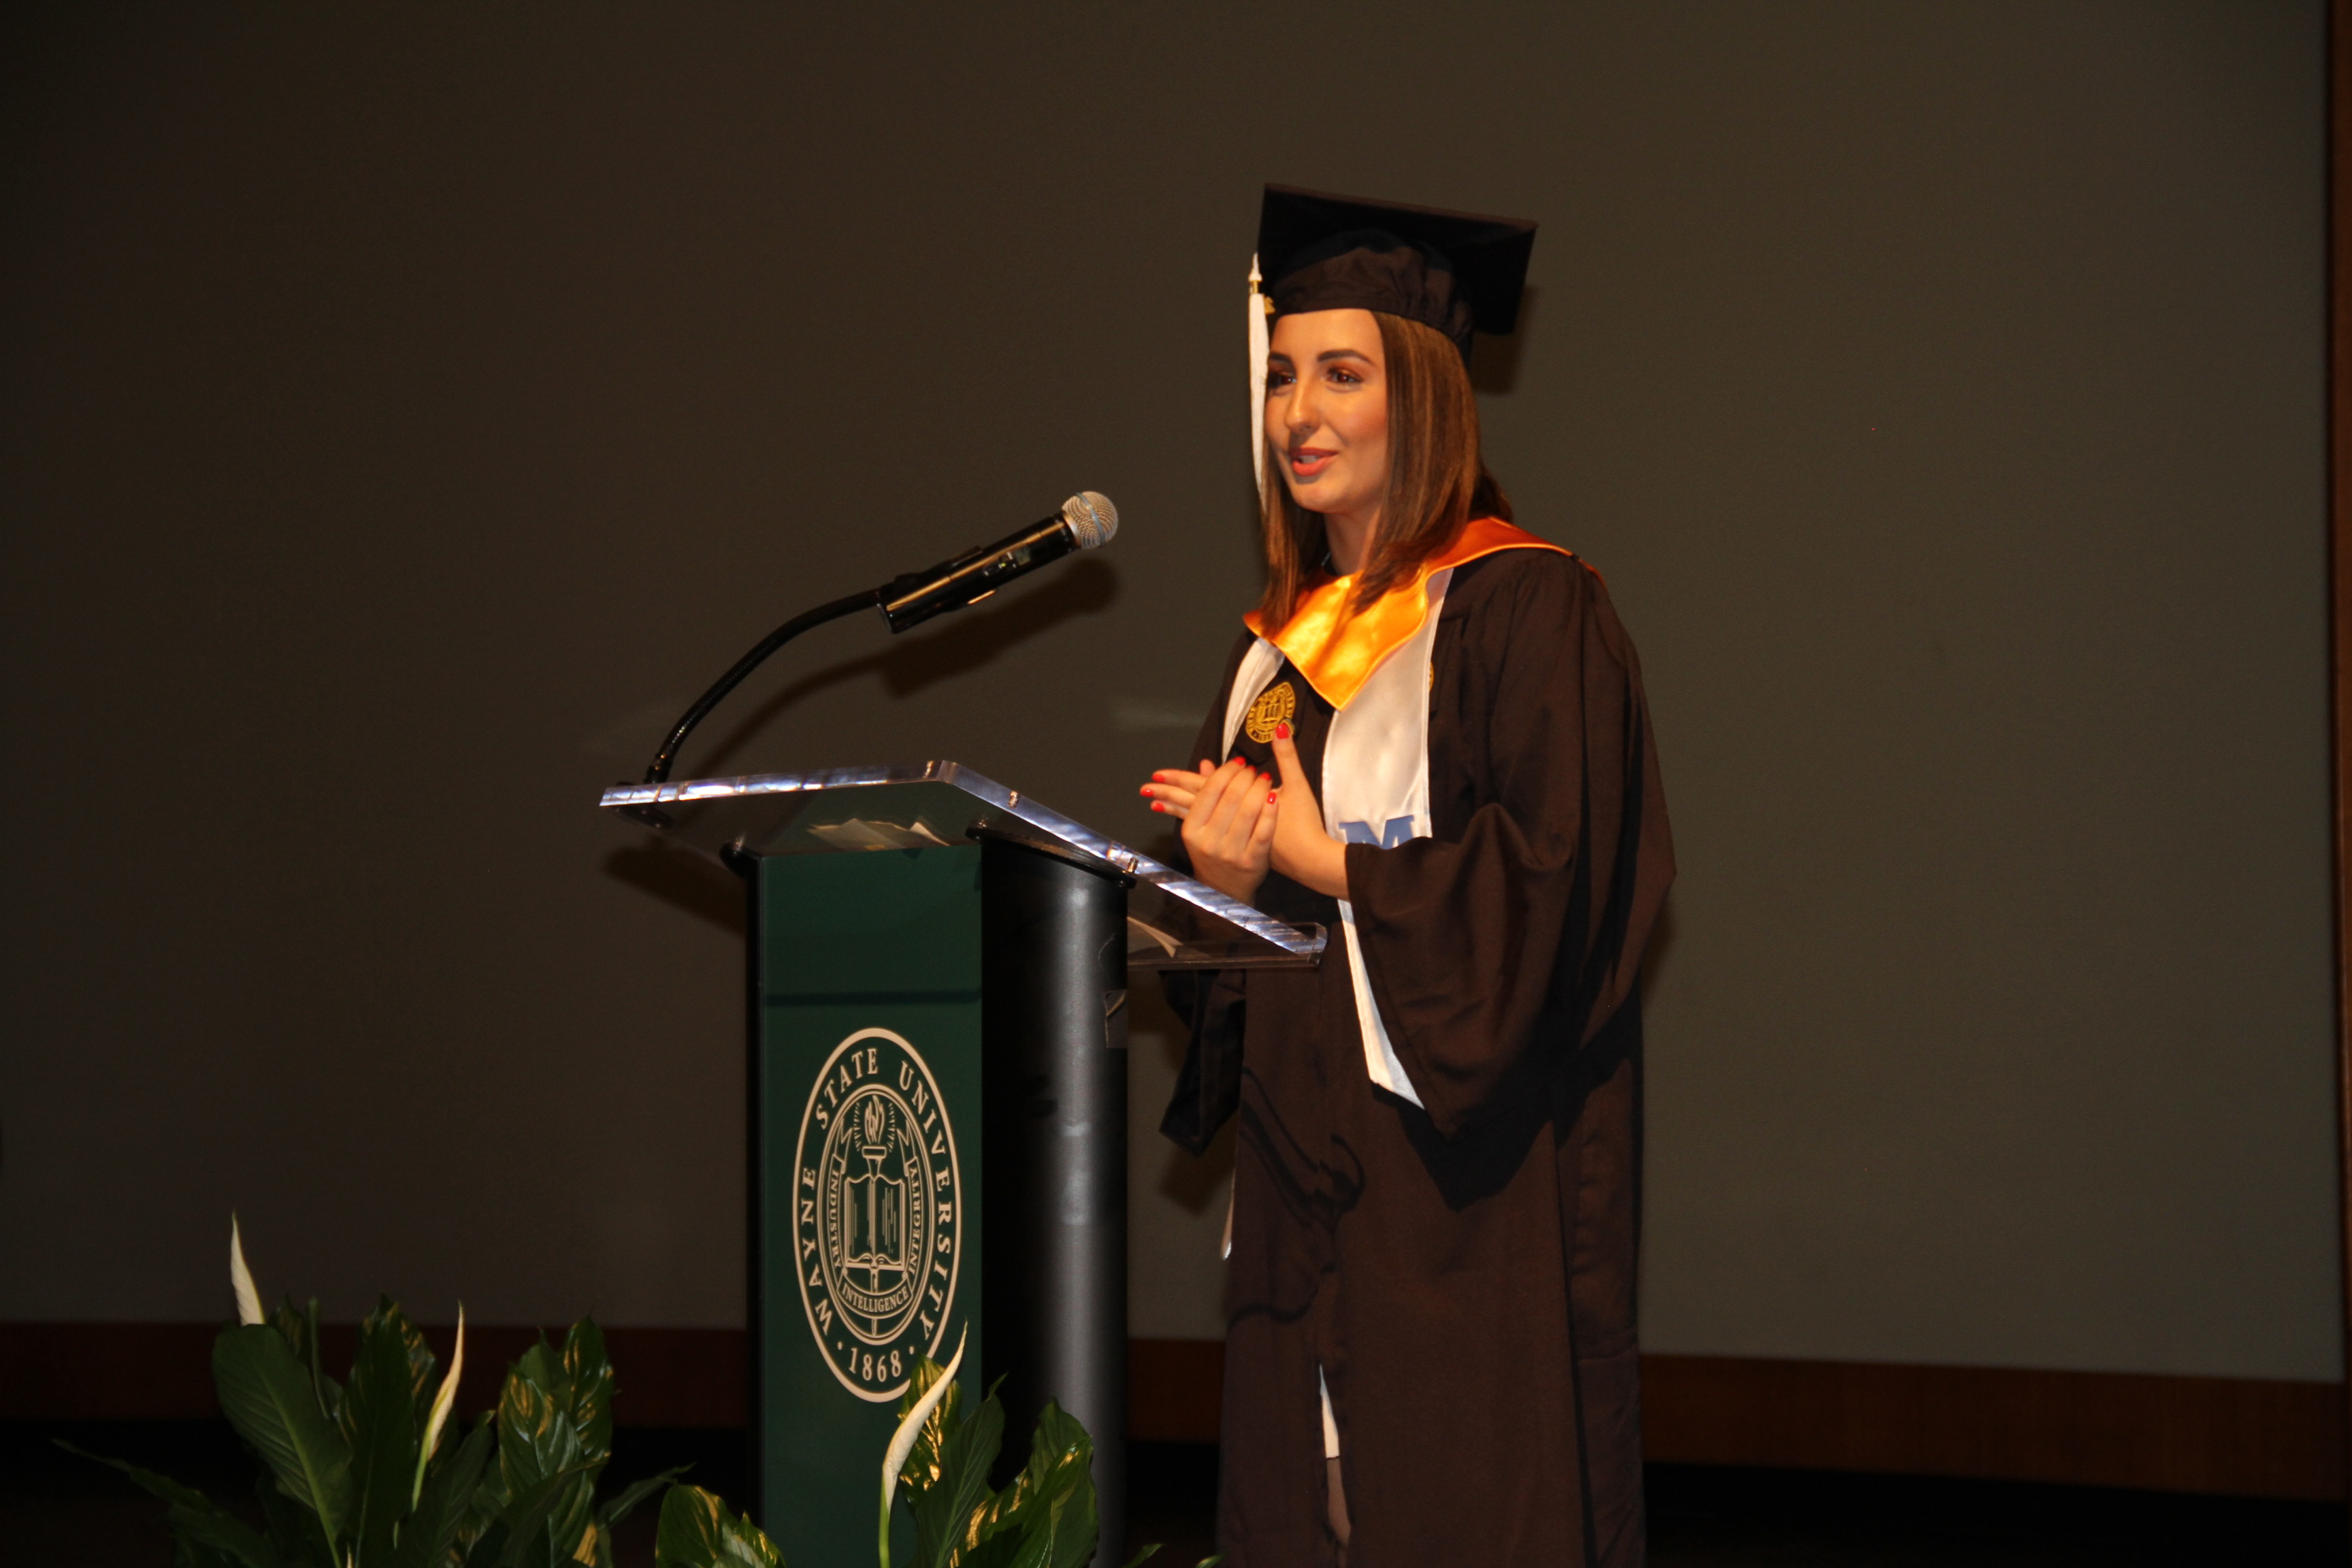 Laial Beidoun speaking at podium in cap and gown